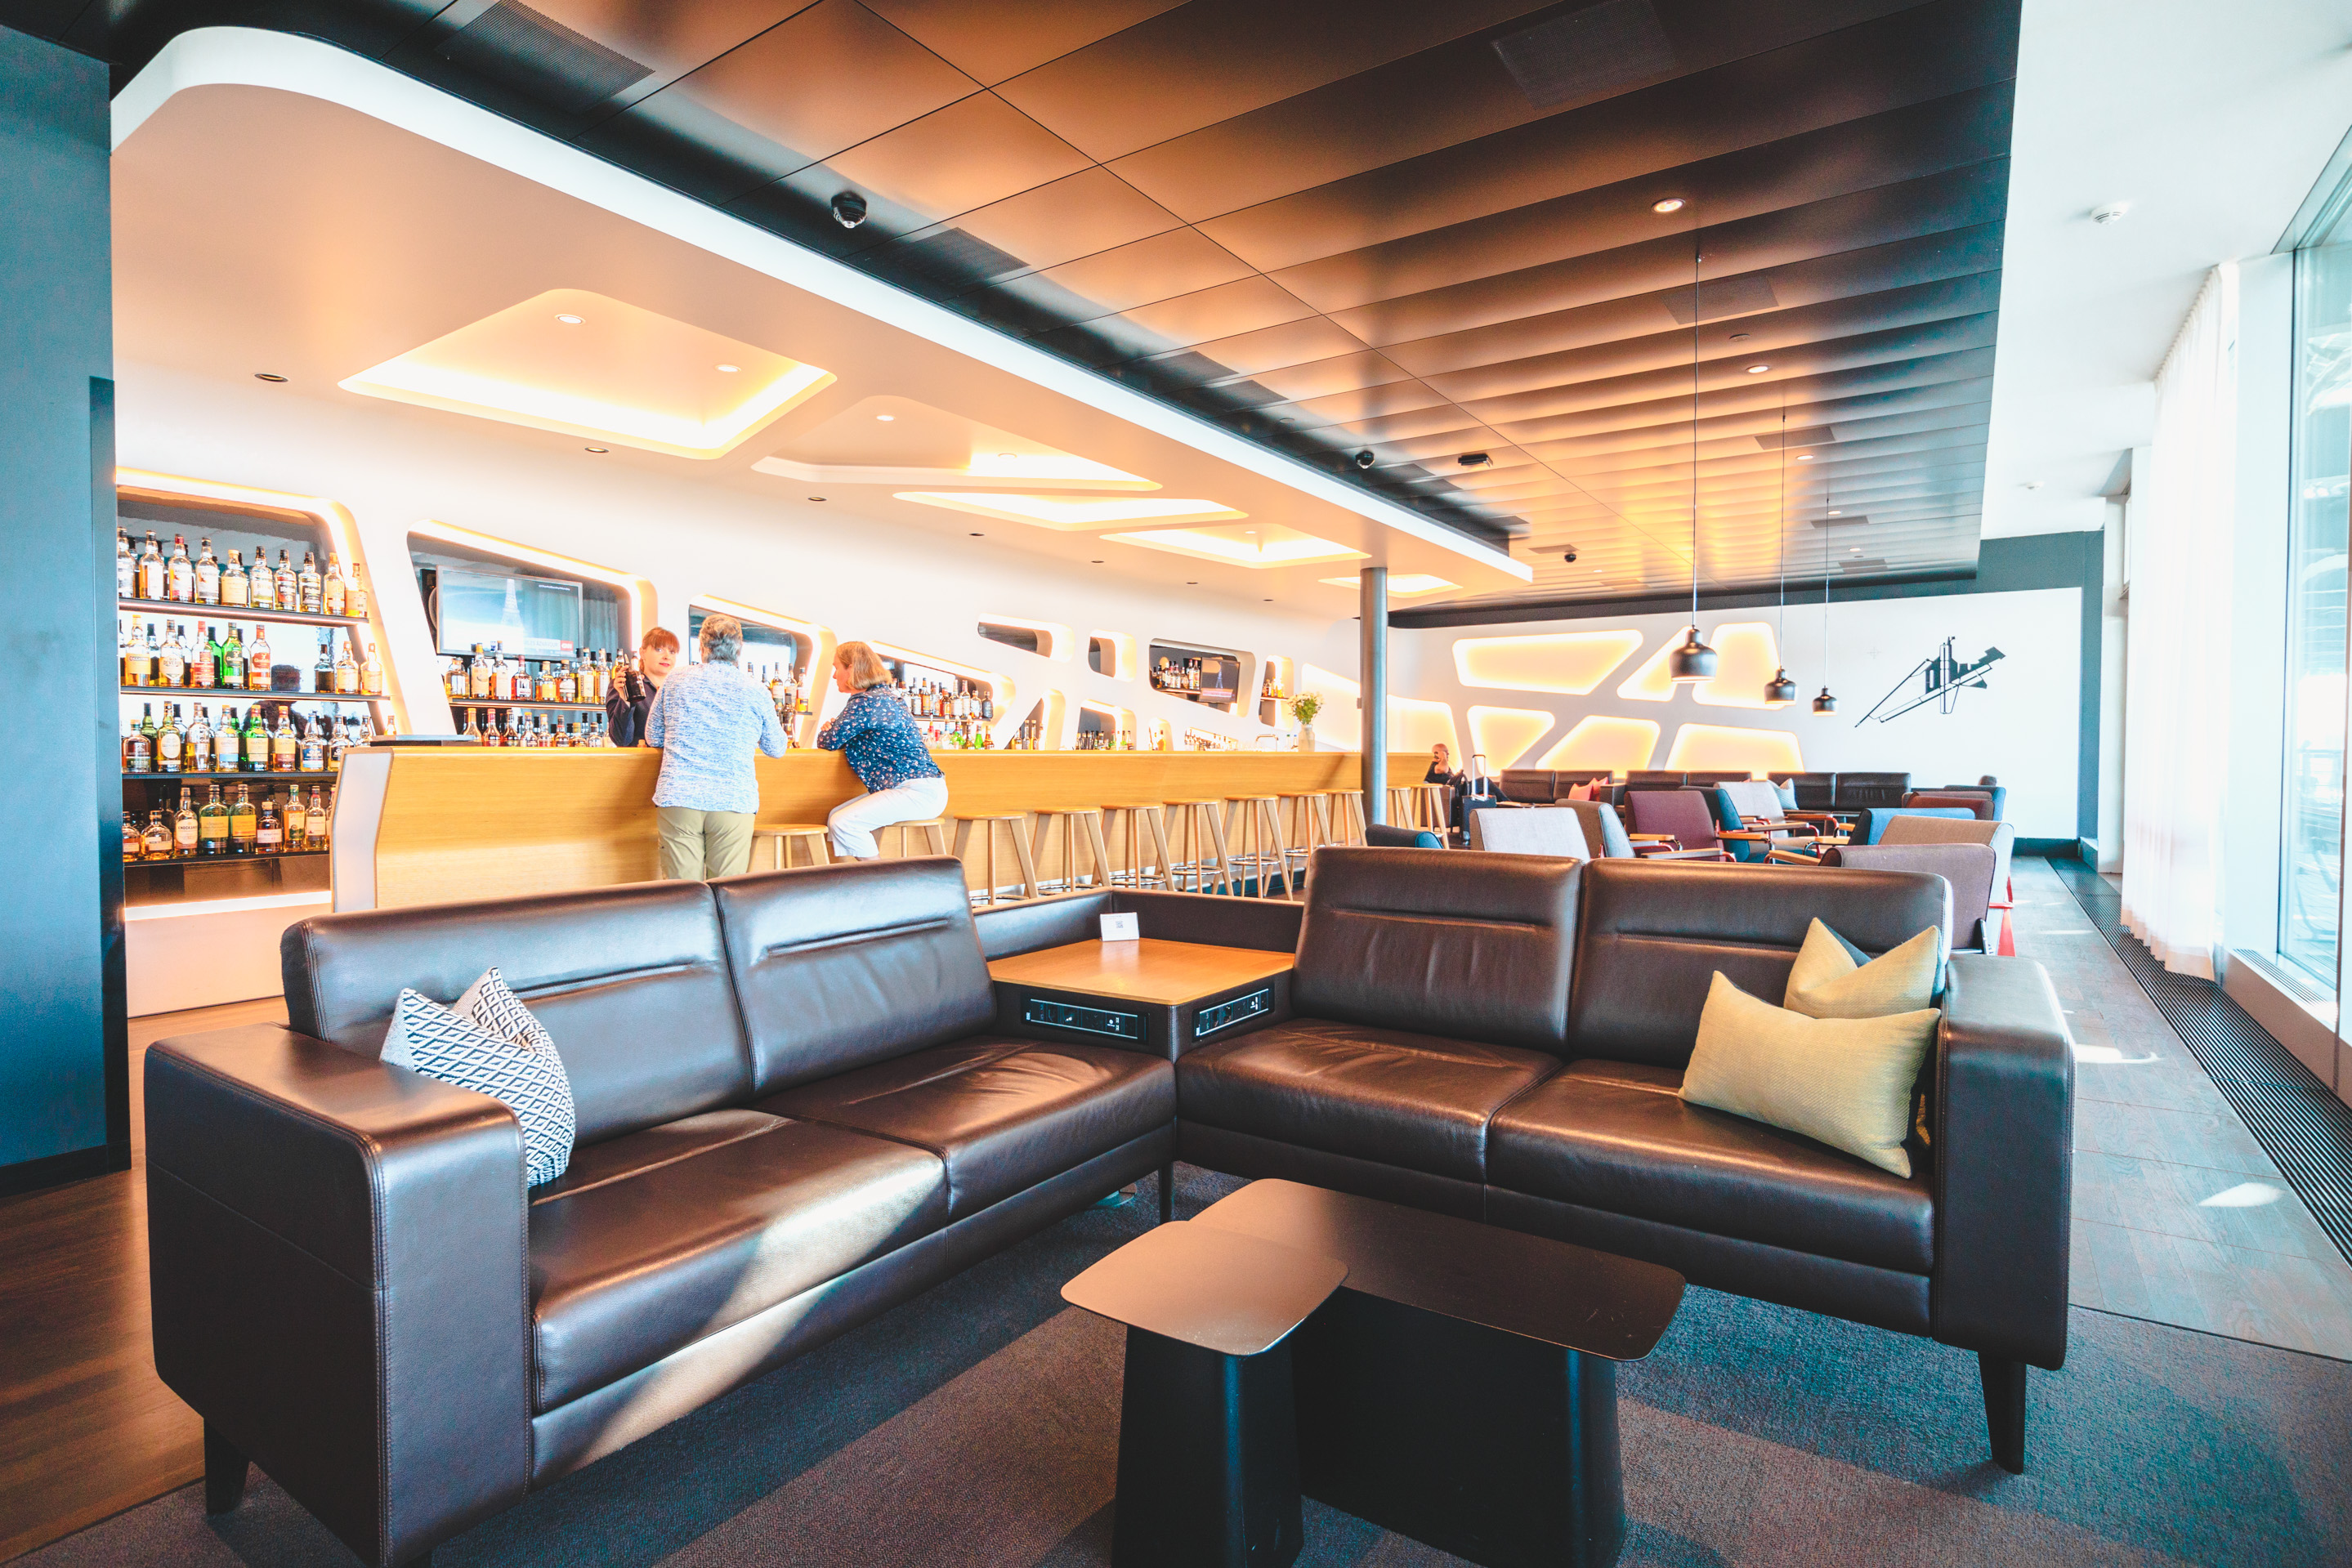 is food free in airport lounges